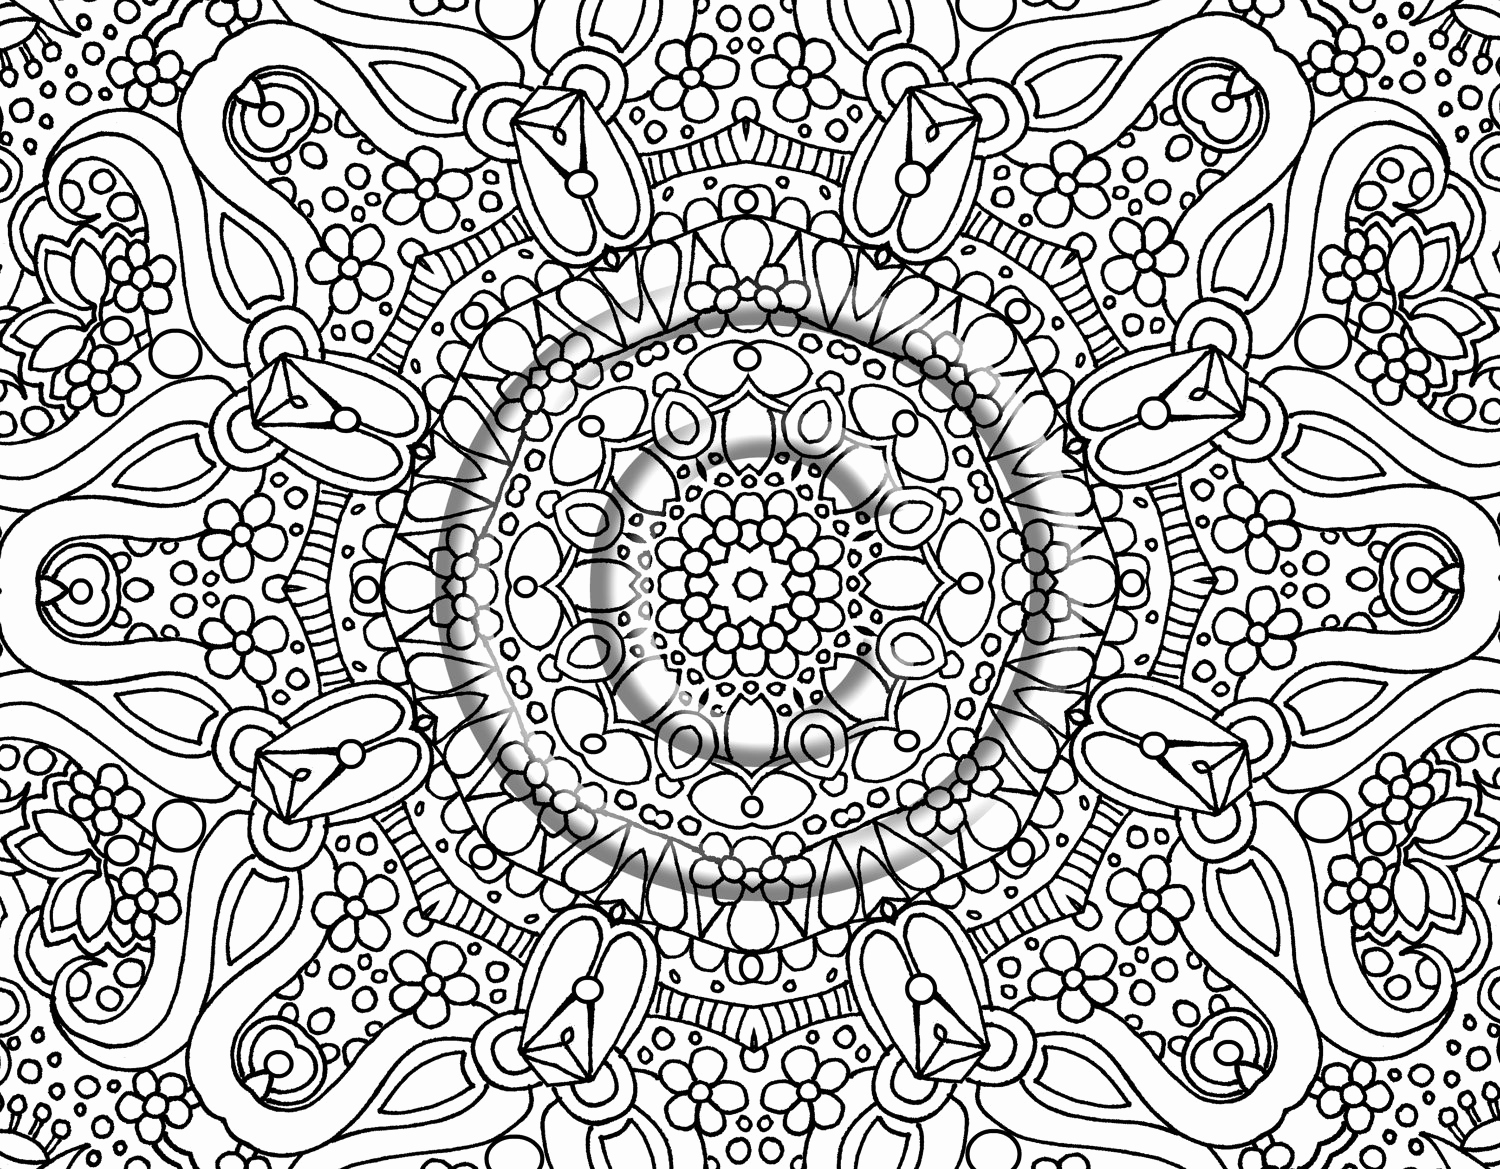 1500x1169 Printable Coloring Sheets For Boys Inspirational Coloring Pages